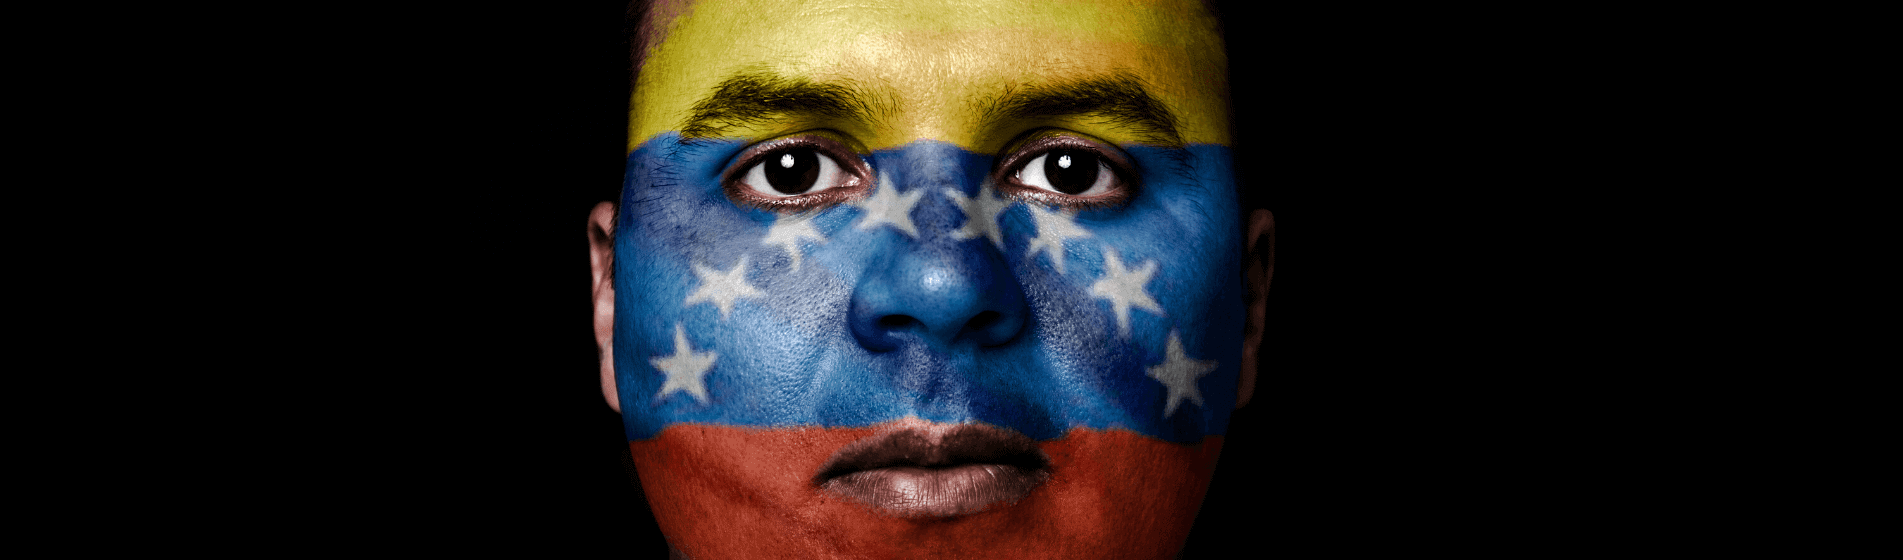 Just how bad is the economy in Venezuela? Here's what three locals told me.